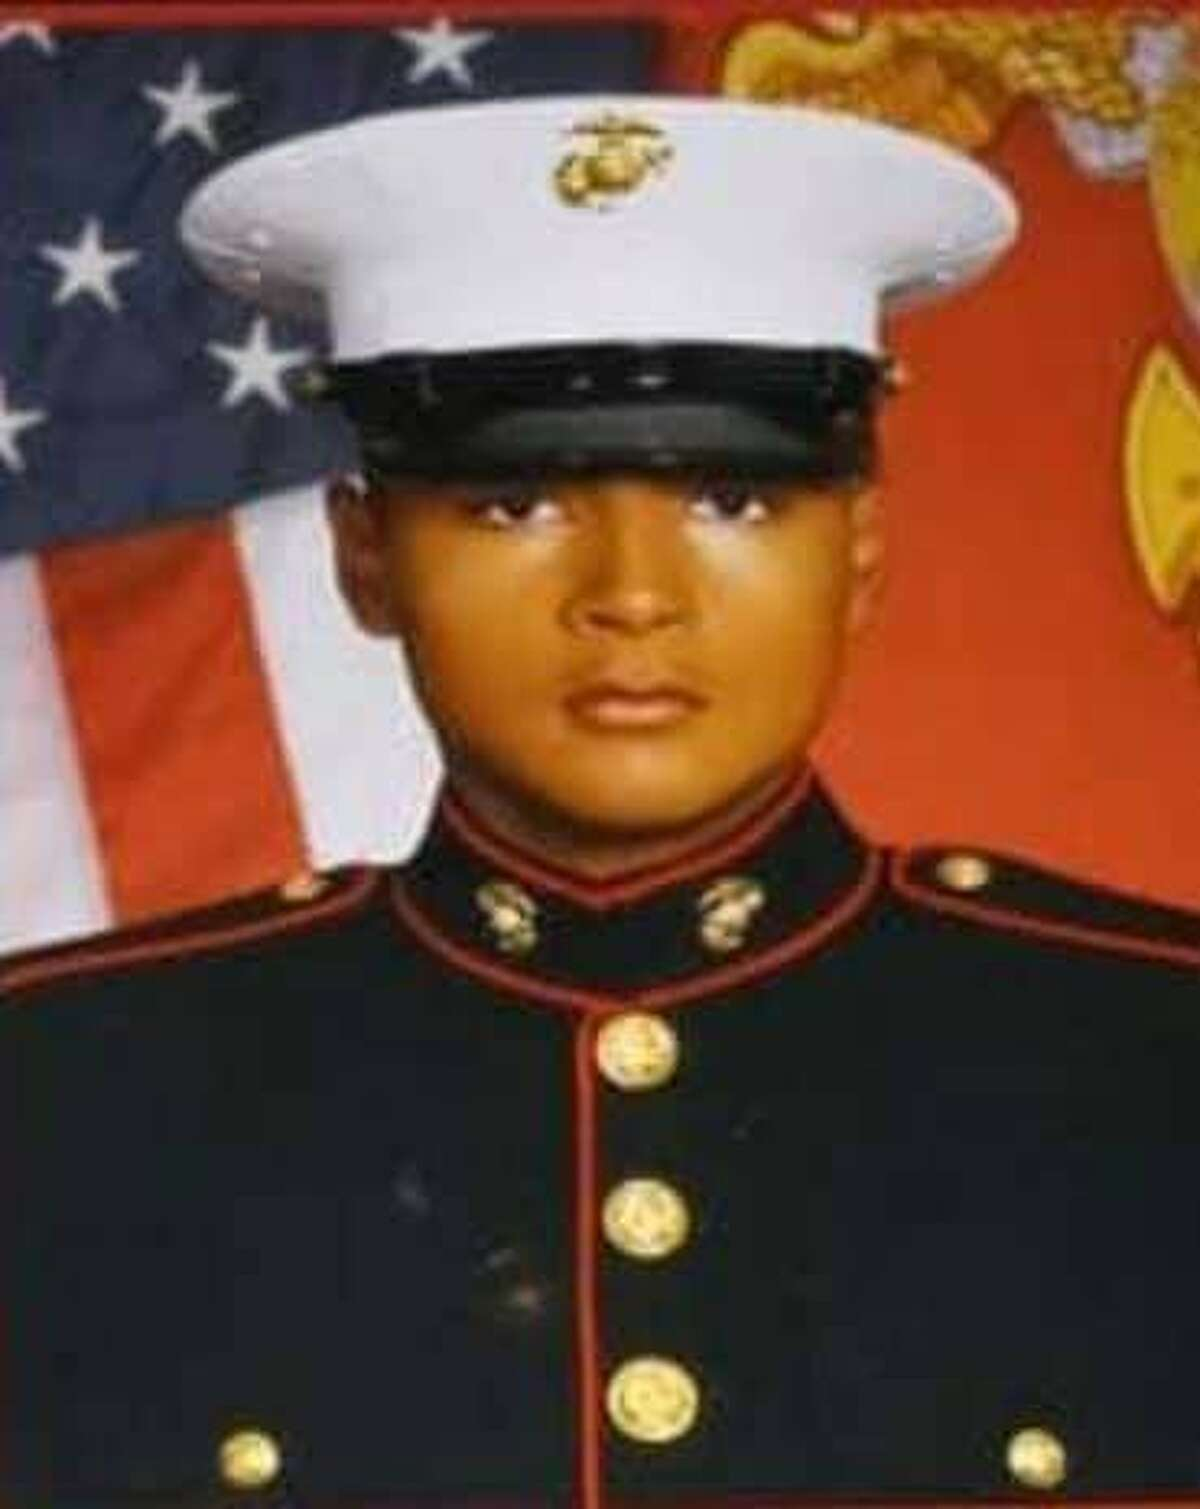 A Laredo Marine was among the U.S. service members killed in deadly Islamic State attack in outside a Kabul Airport in Afghanistan, a source confirmed to the Laredo Morning Times.